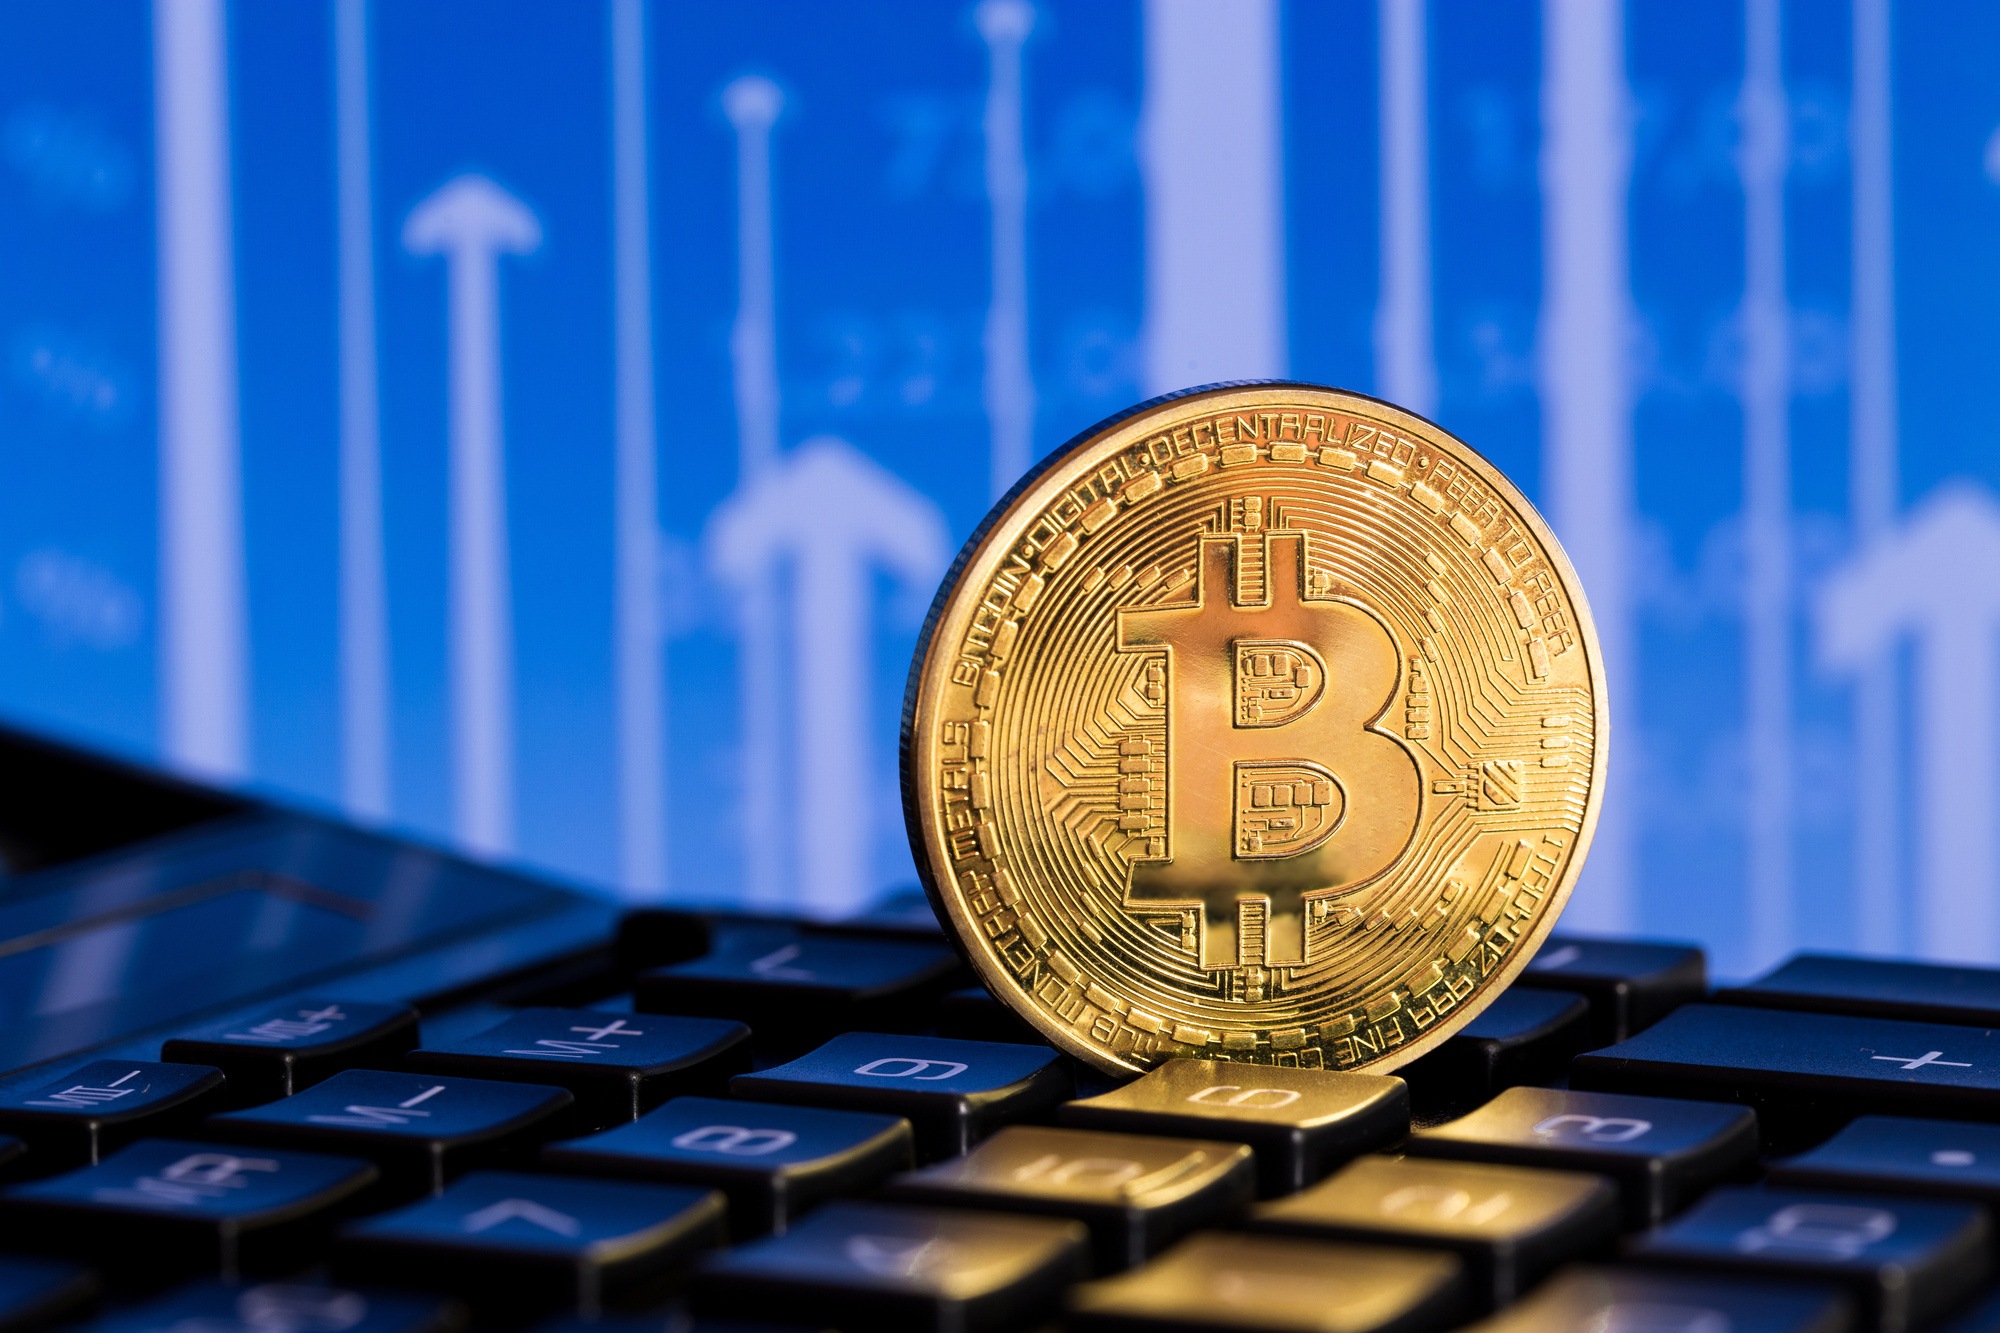 Have you ever been interested in the cryptocurrency vs digital currency debate? Do you understand the difference between the two? Read on to find out.